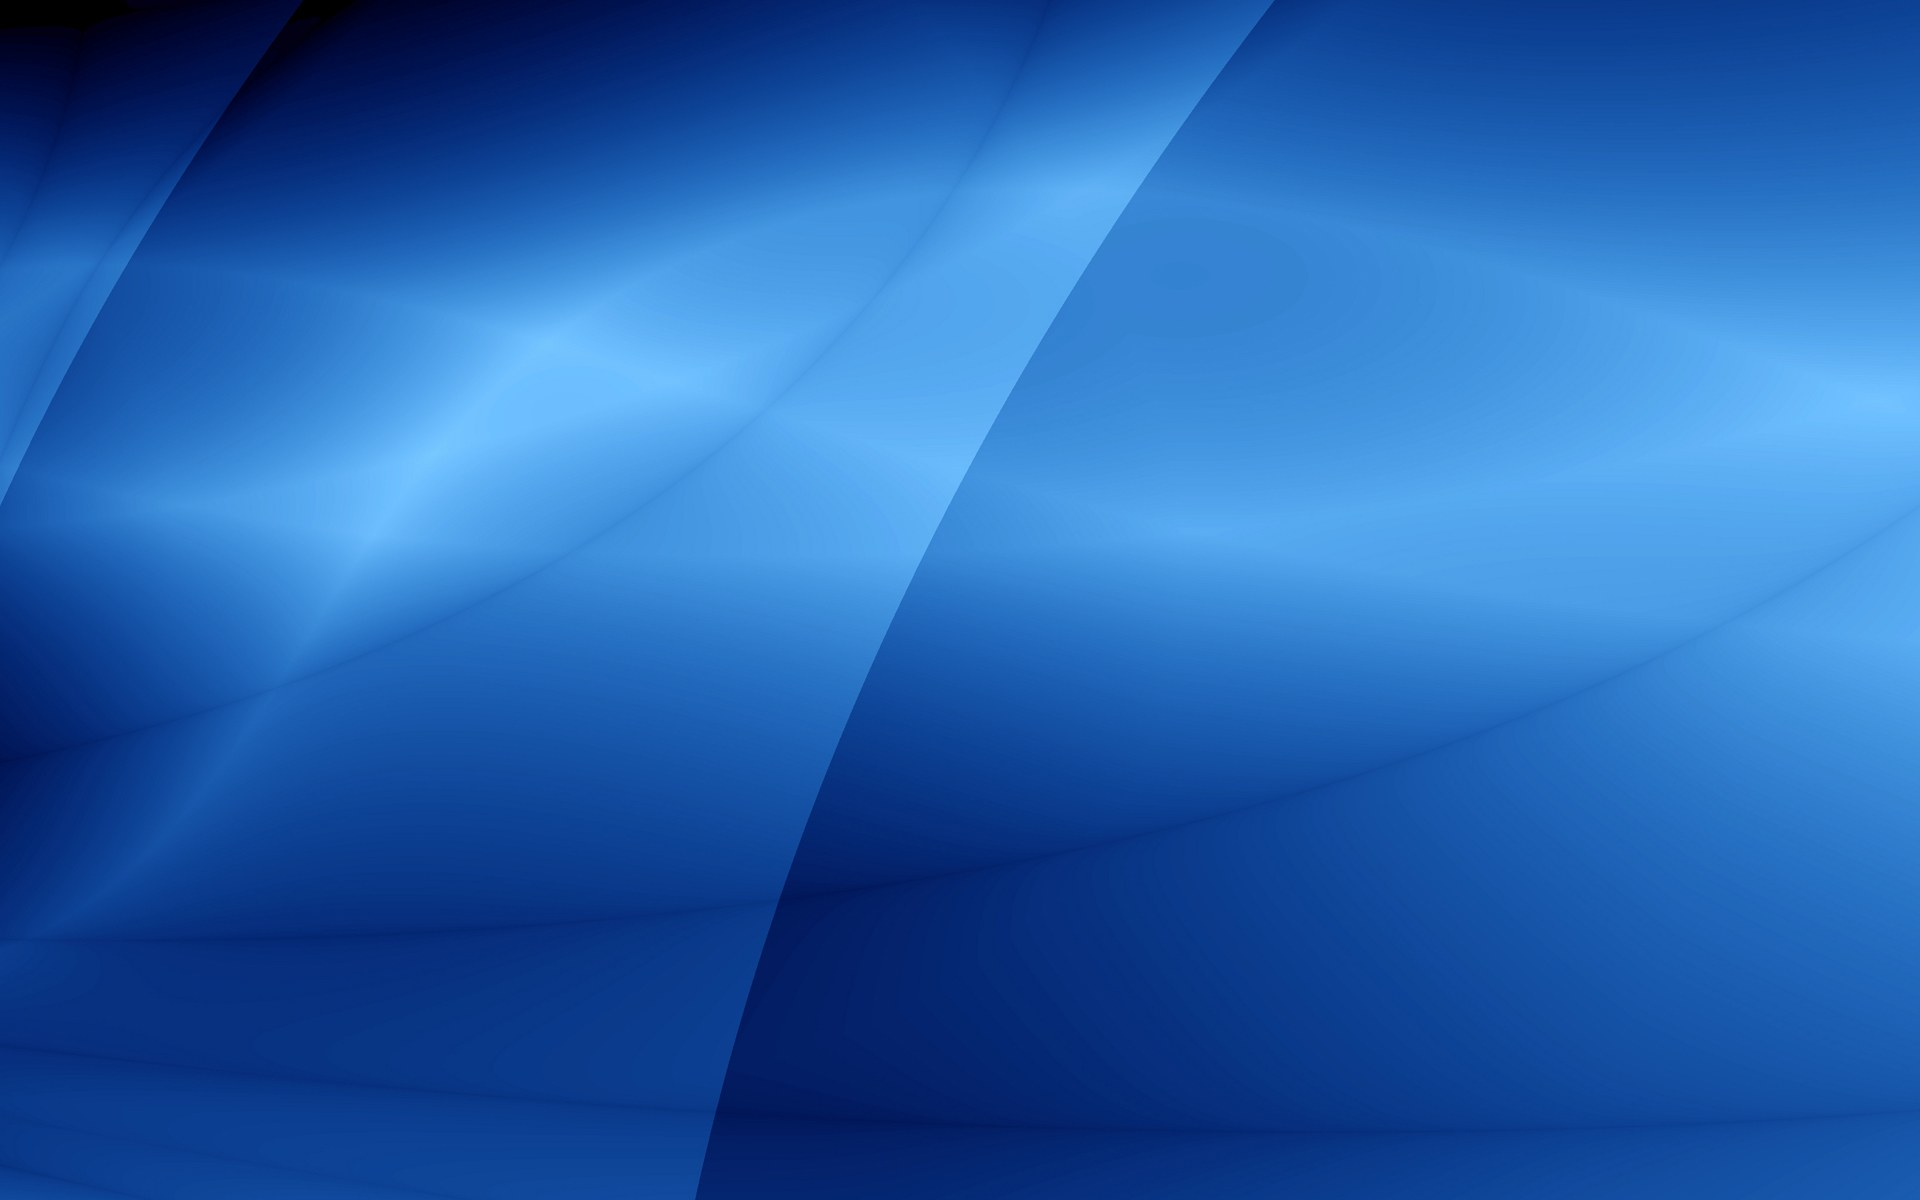 Blue Abstract Background 2042 Hd Wallpapers in Abstract   Imagescicom 1920x1200